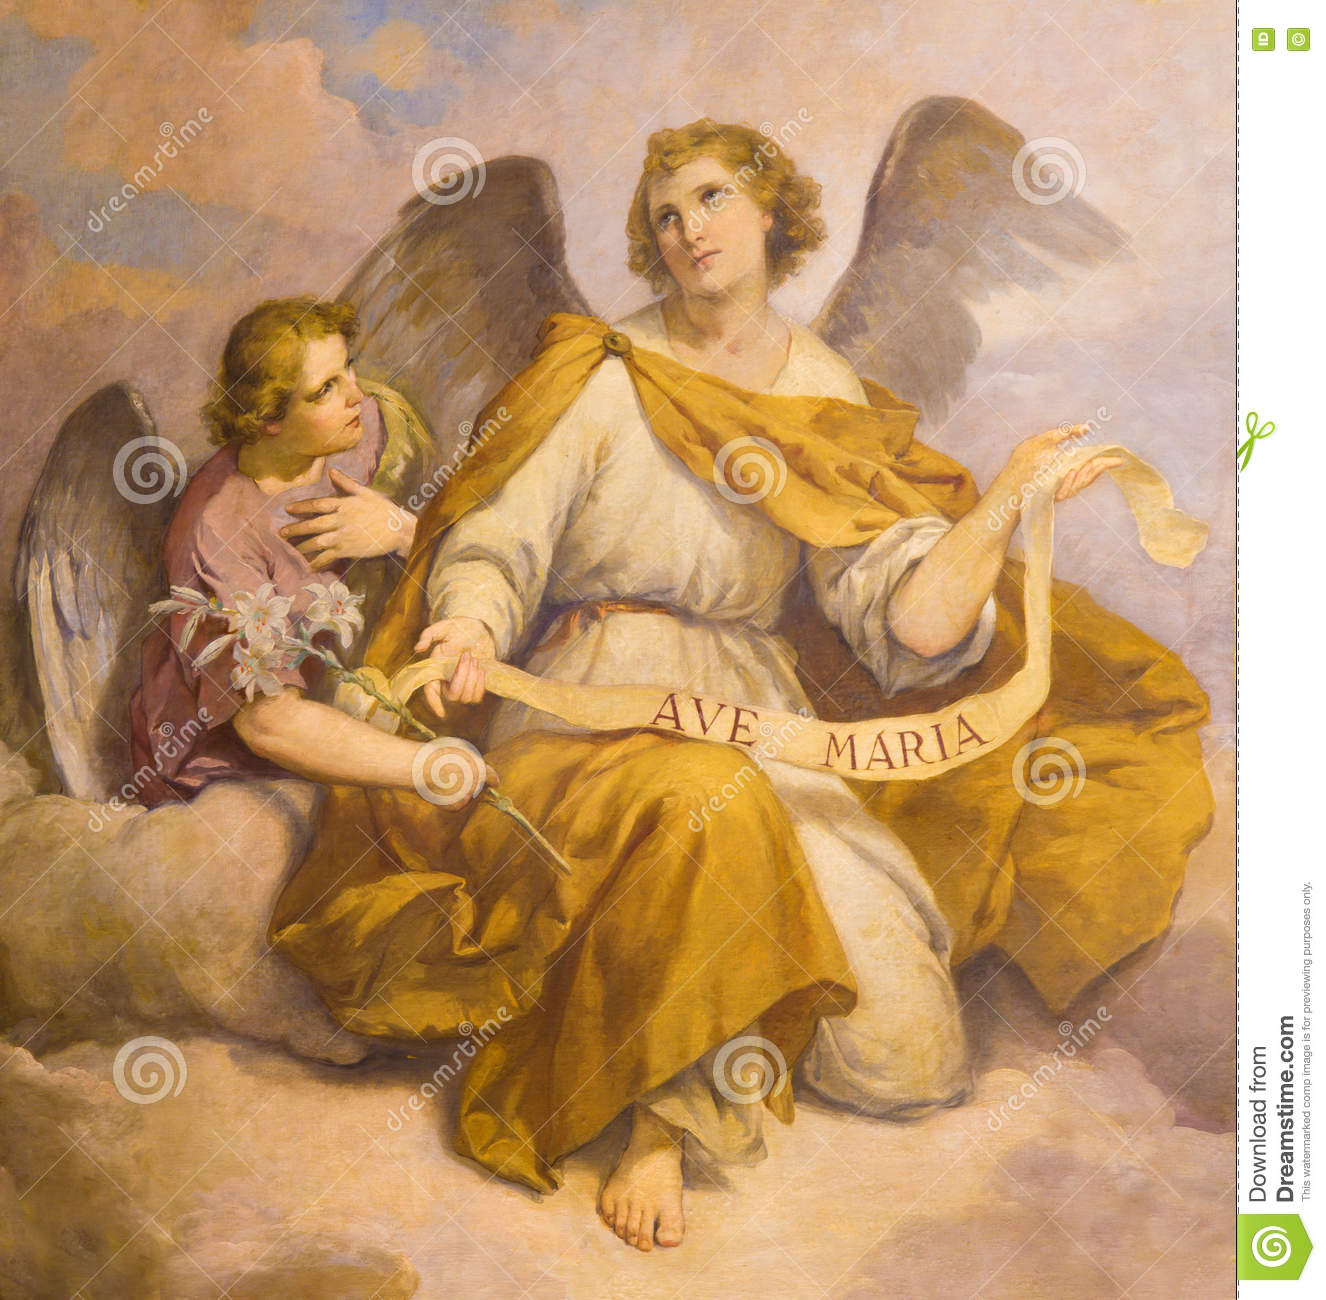 ROME, ITALY - MARCH 9, 2016: The fresco of angels in church Chiesa di Santa Maria in Aquiro (Our Lady of Lourdes chapel)